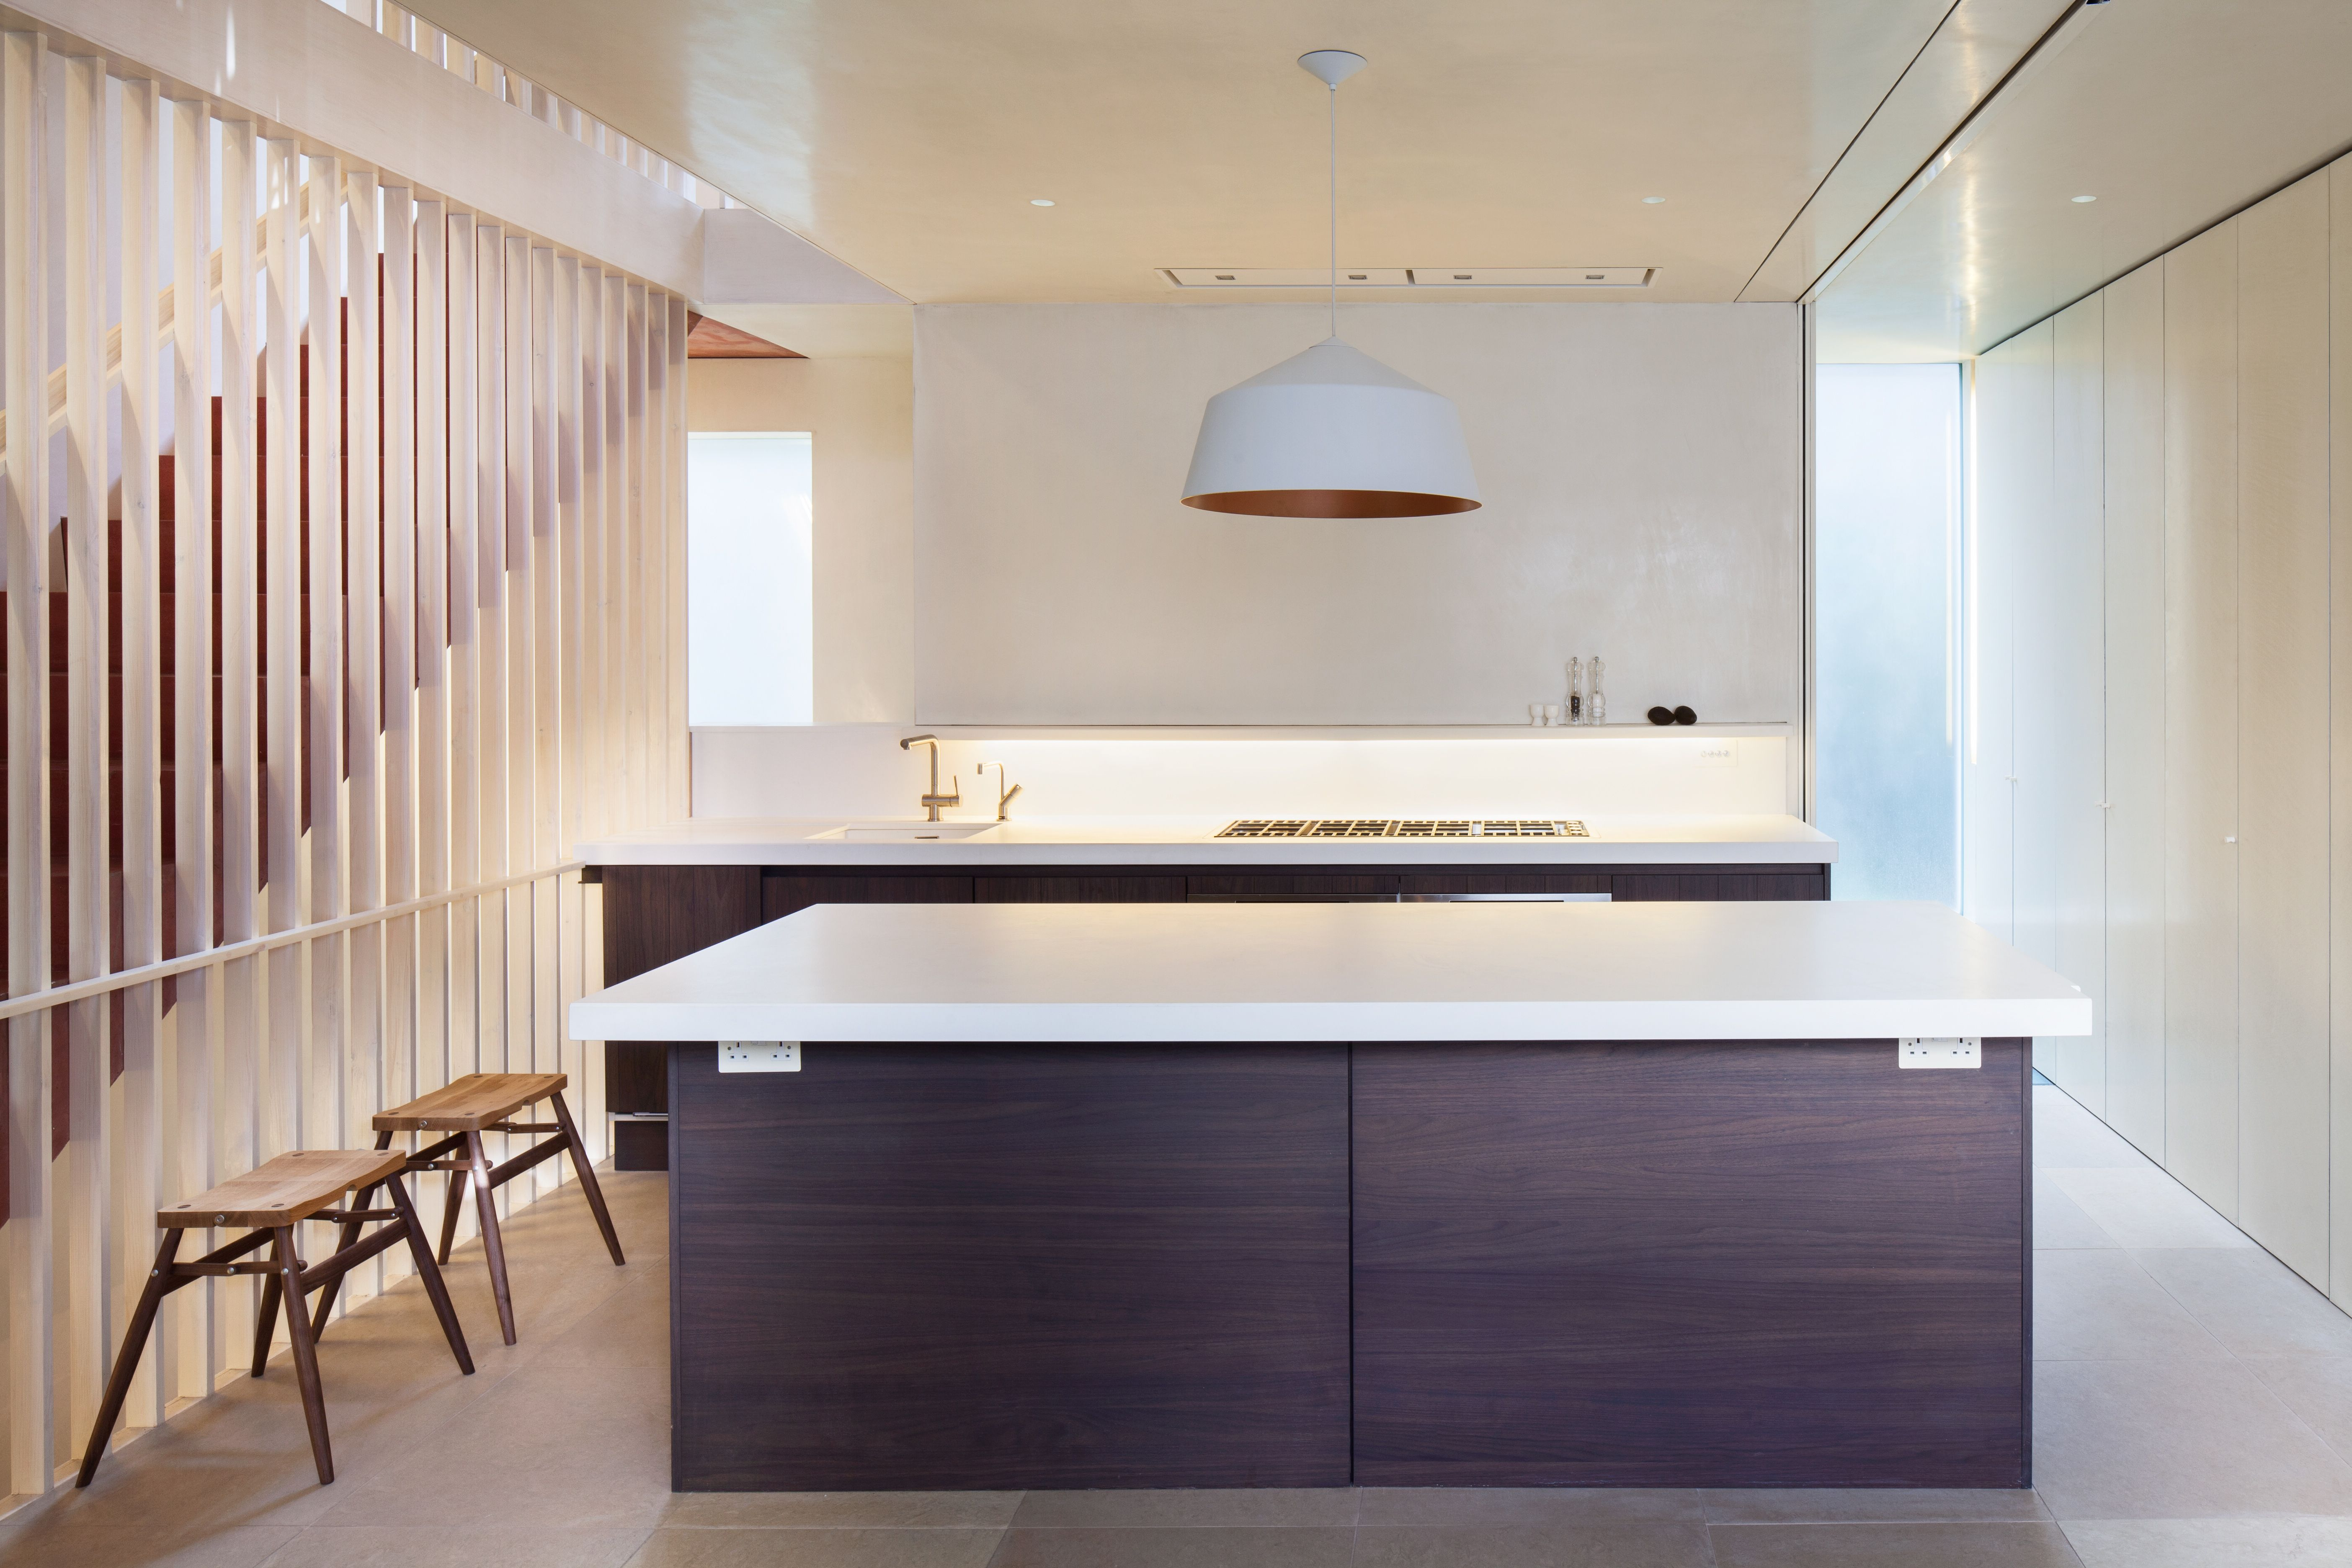 Explore Kitchen World, Modern White Kitchens And More! Submariners House |  Jonathan Tuckey Design, West London.